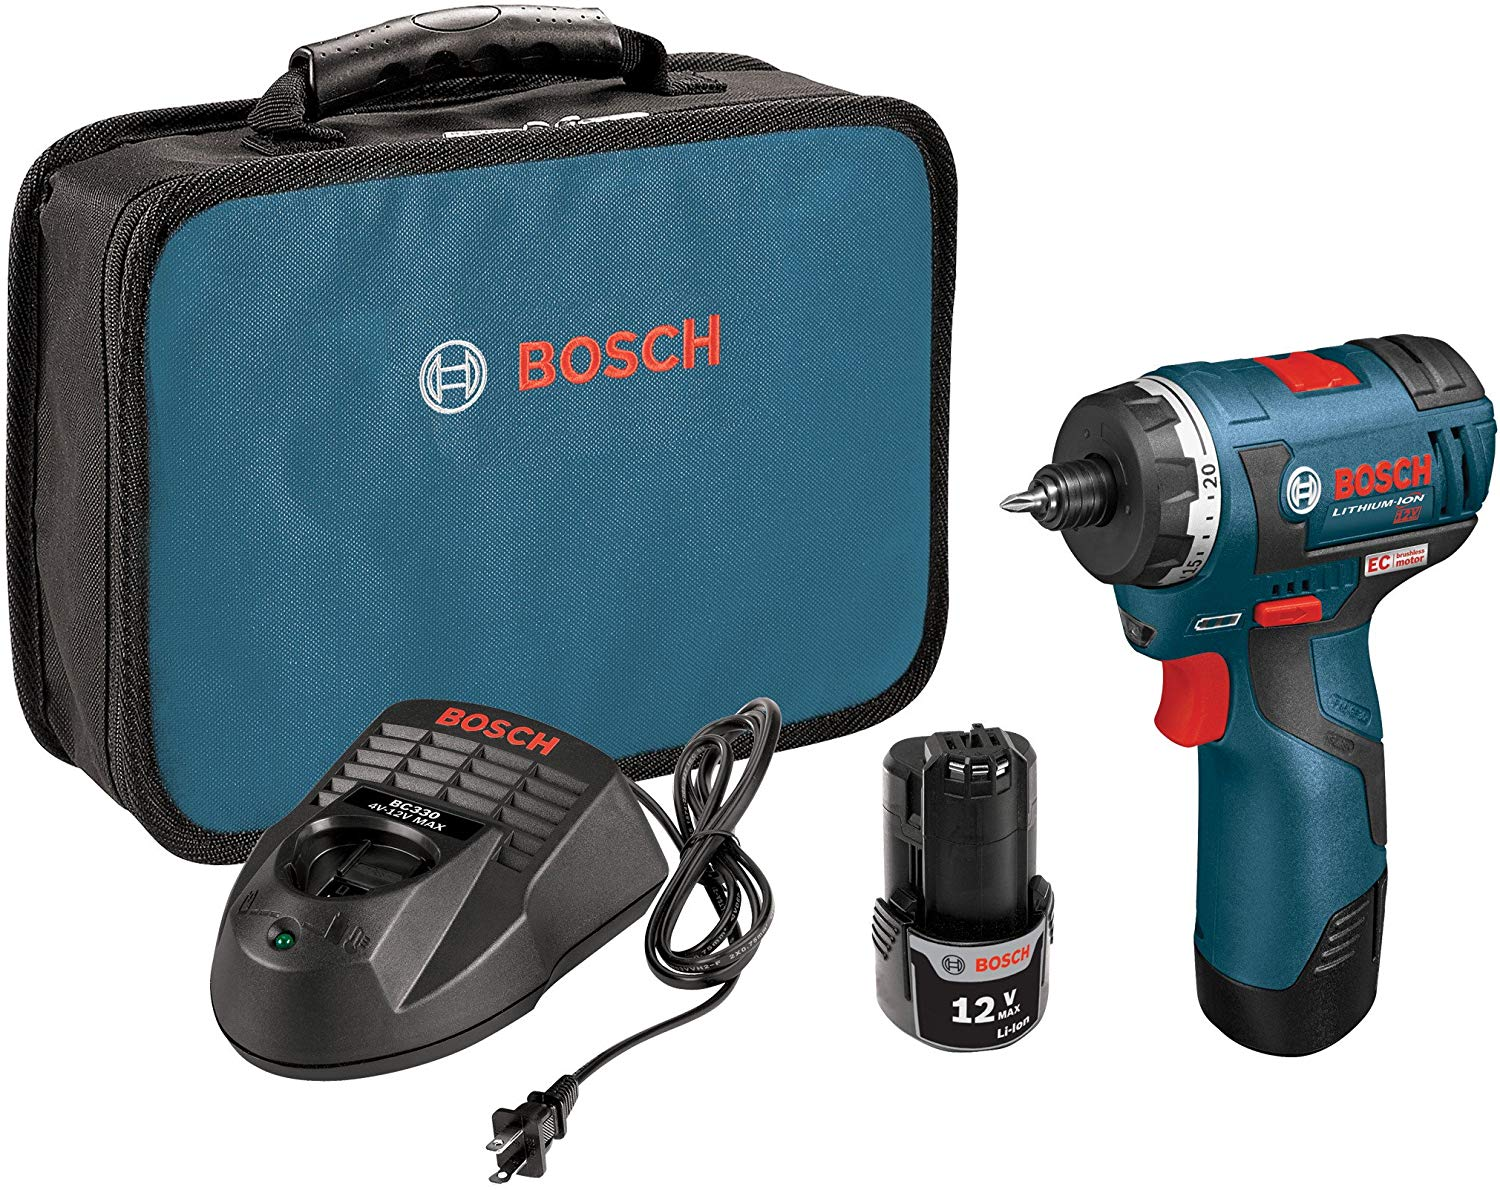 Bosch  12-volt Max Brushless Pocket Driver Kit With 2.0ah Batteries, Charger And Case